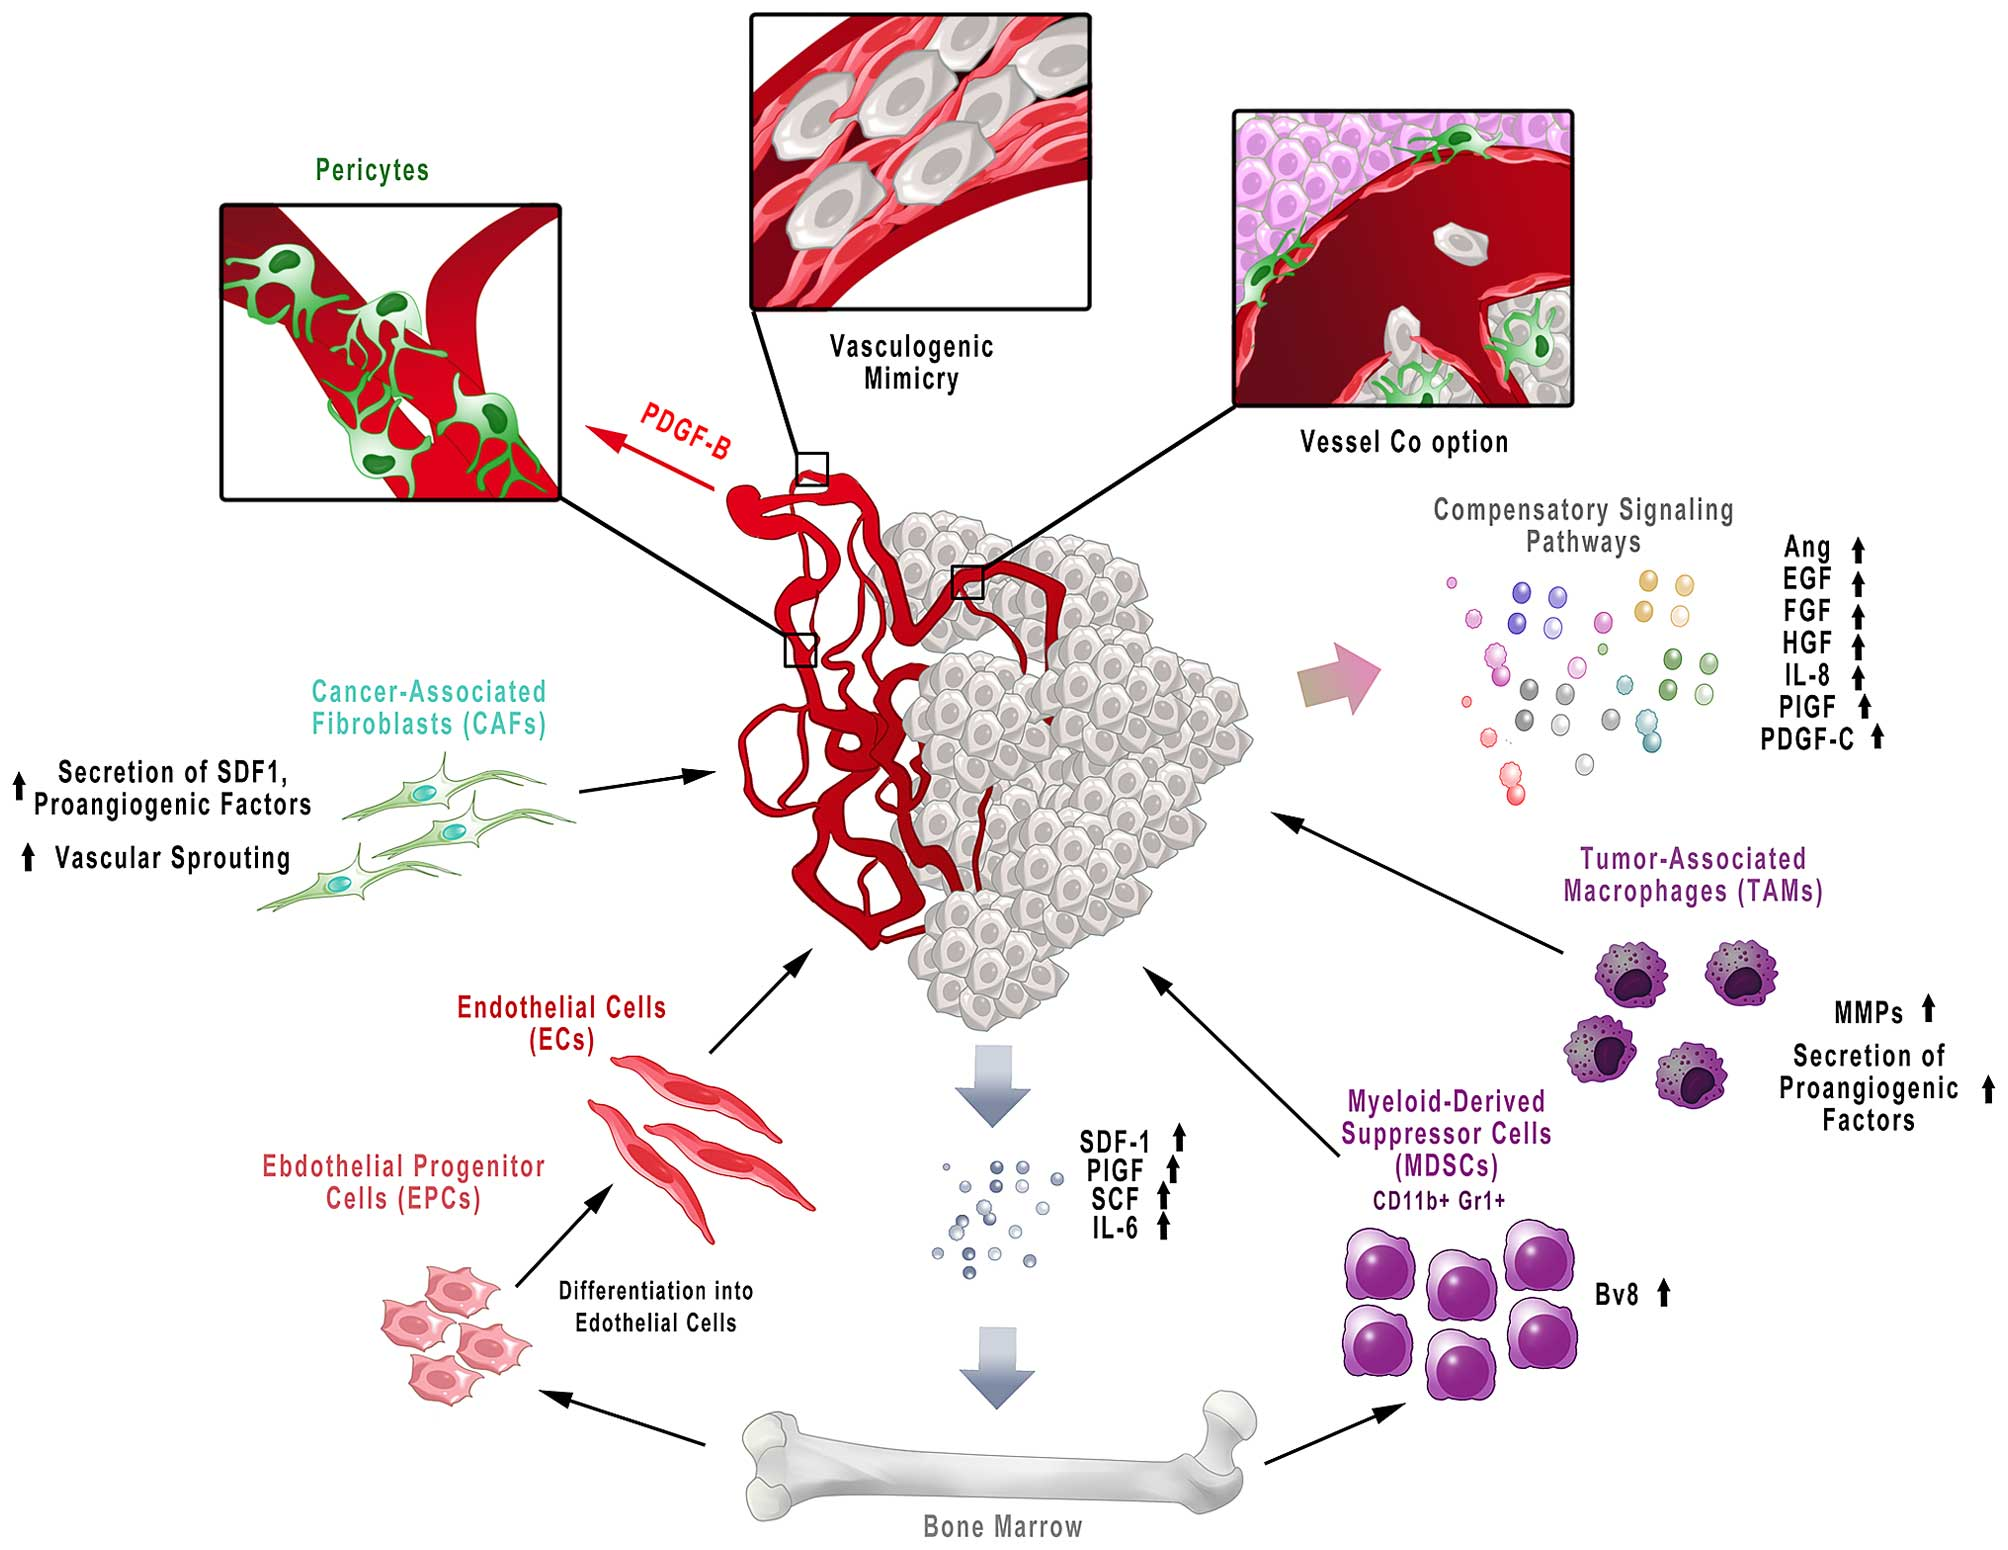 Effects of anti-angiogenic therapy. The mechanism of